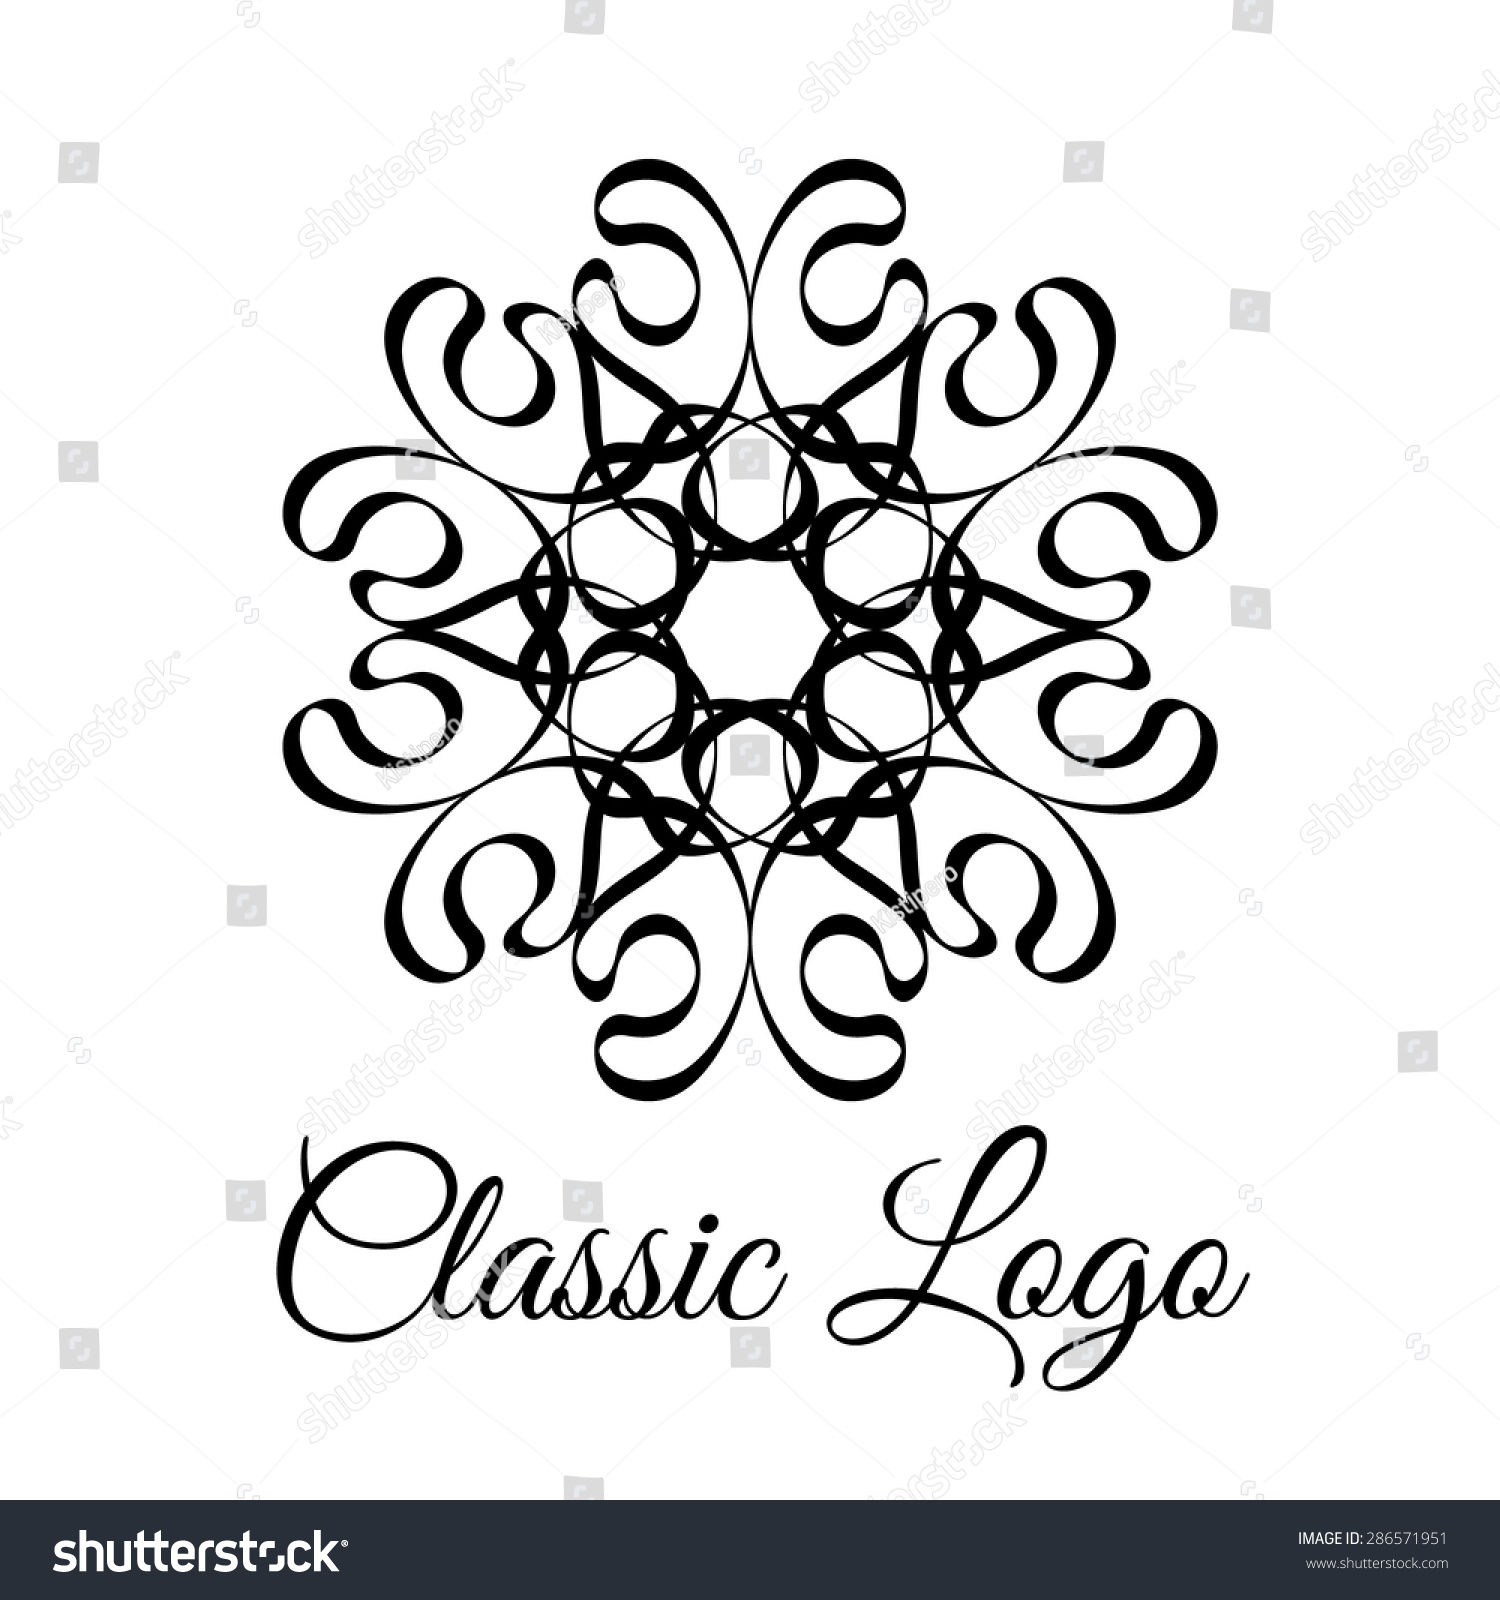 Lace Classic Calligraphy Copperplate Circle Flower Logo